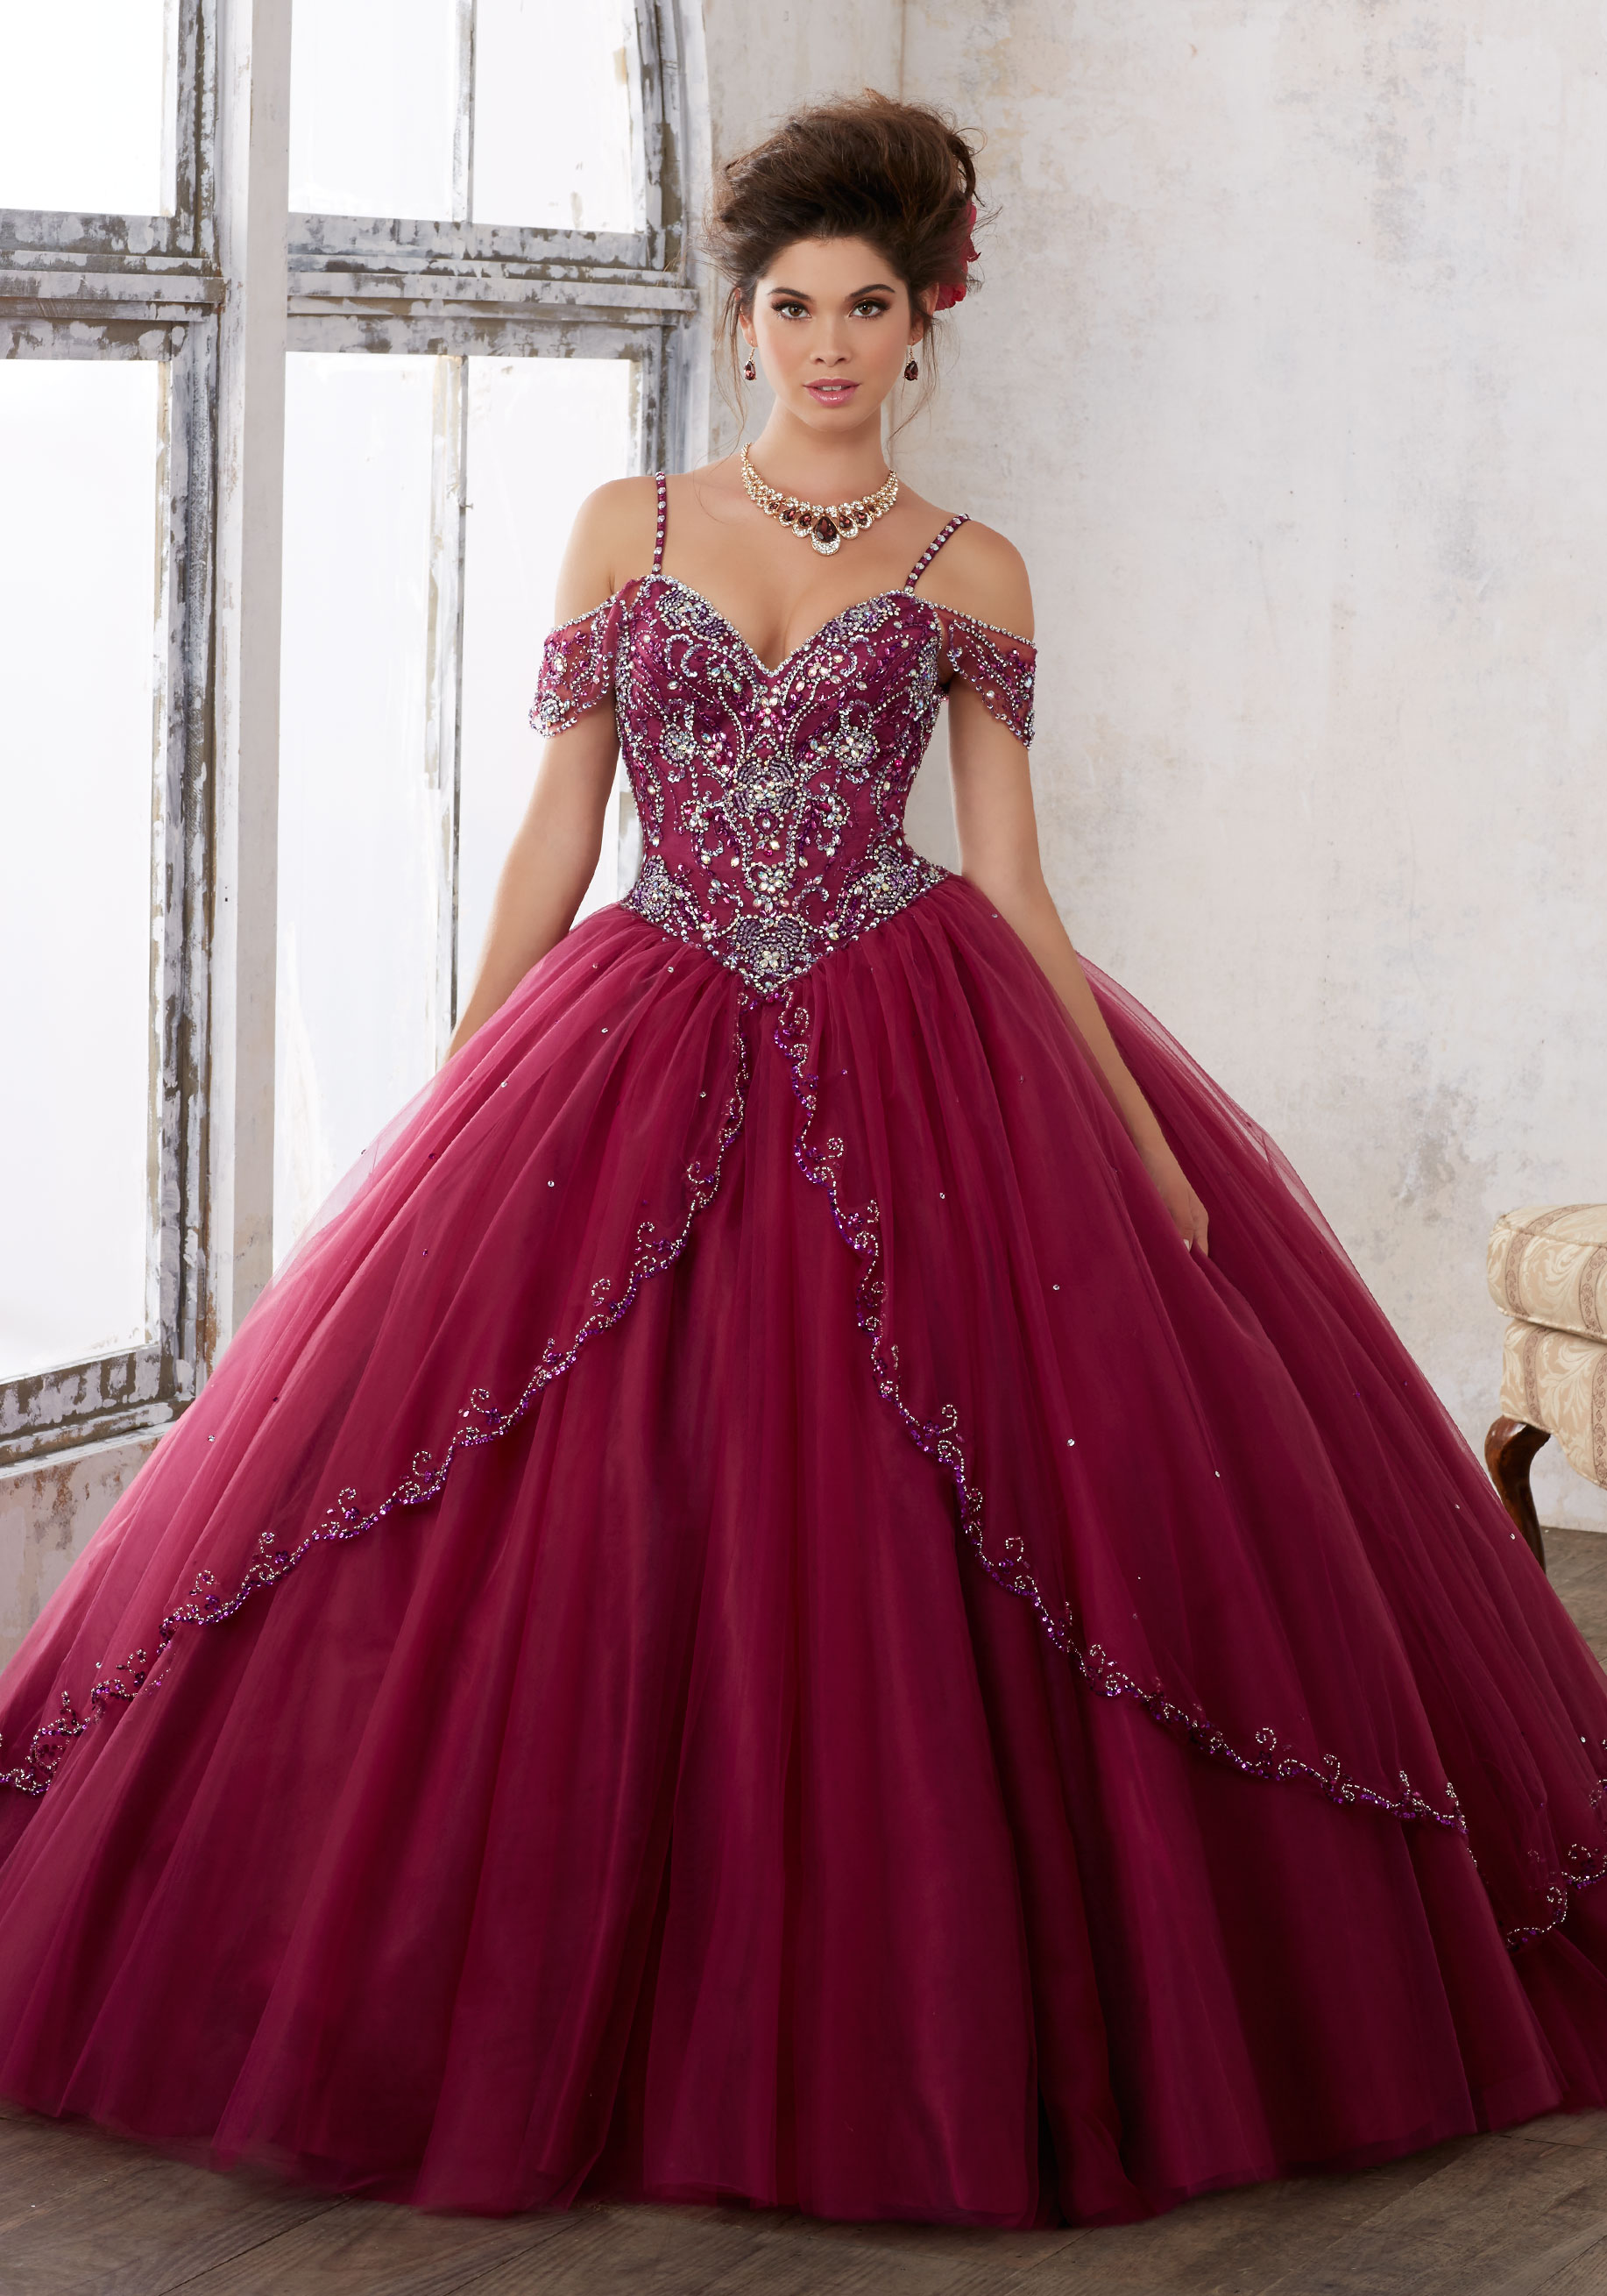 Compare Prices on Quinceanera Dresses Black- Online Shopping/Buy ...